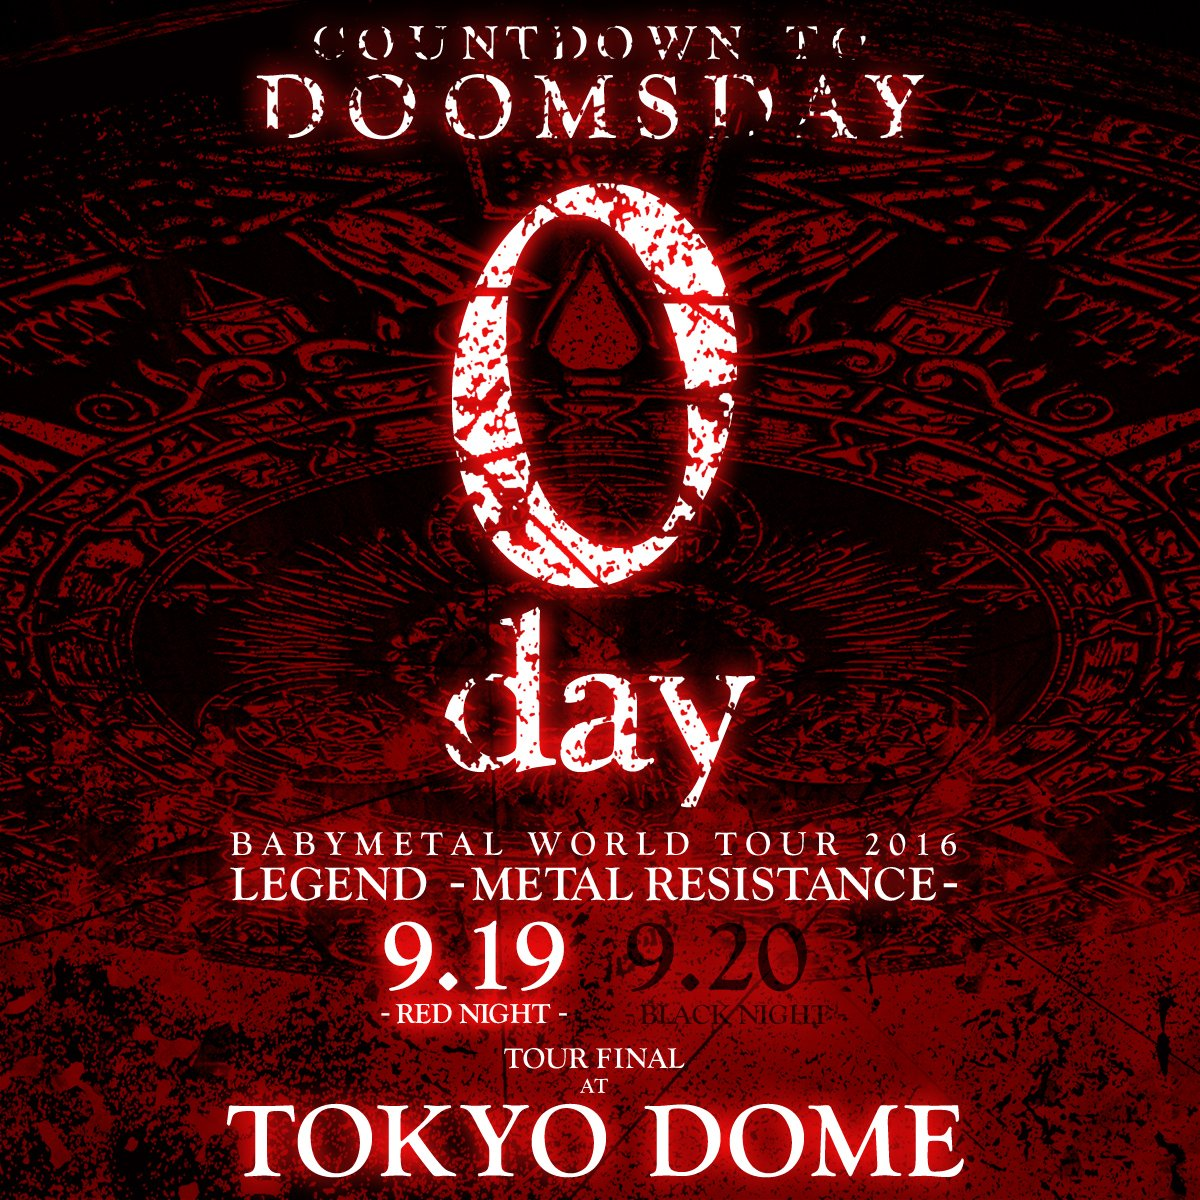 DOOMSDAY is coming #BABYMETAL #TOKYODOME #東京ドーム #THEONE #DOOMSDAY https;//t.co/gMK0W3yCDi